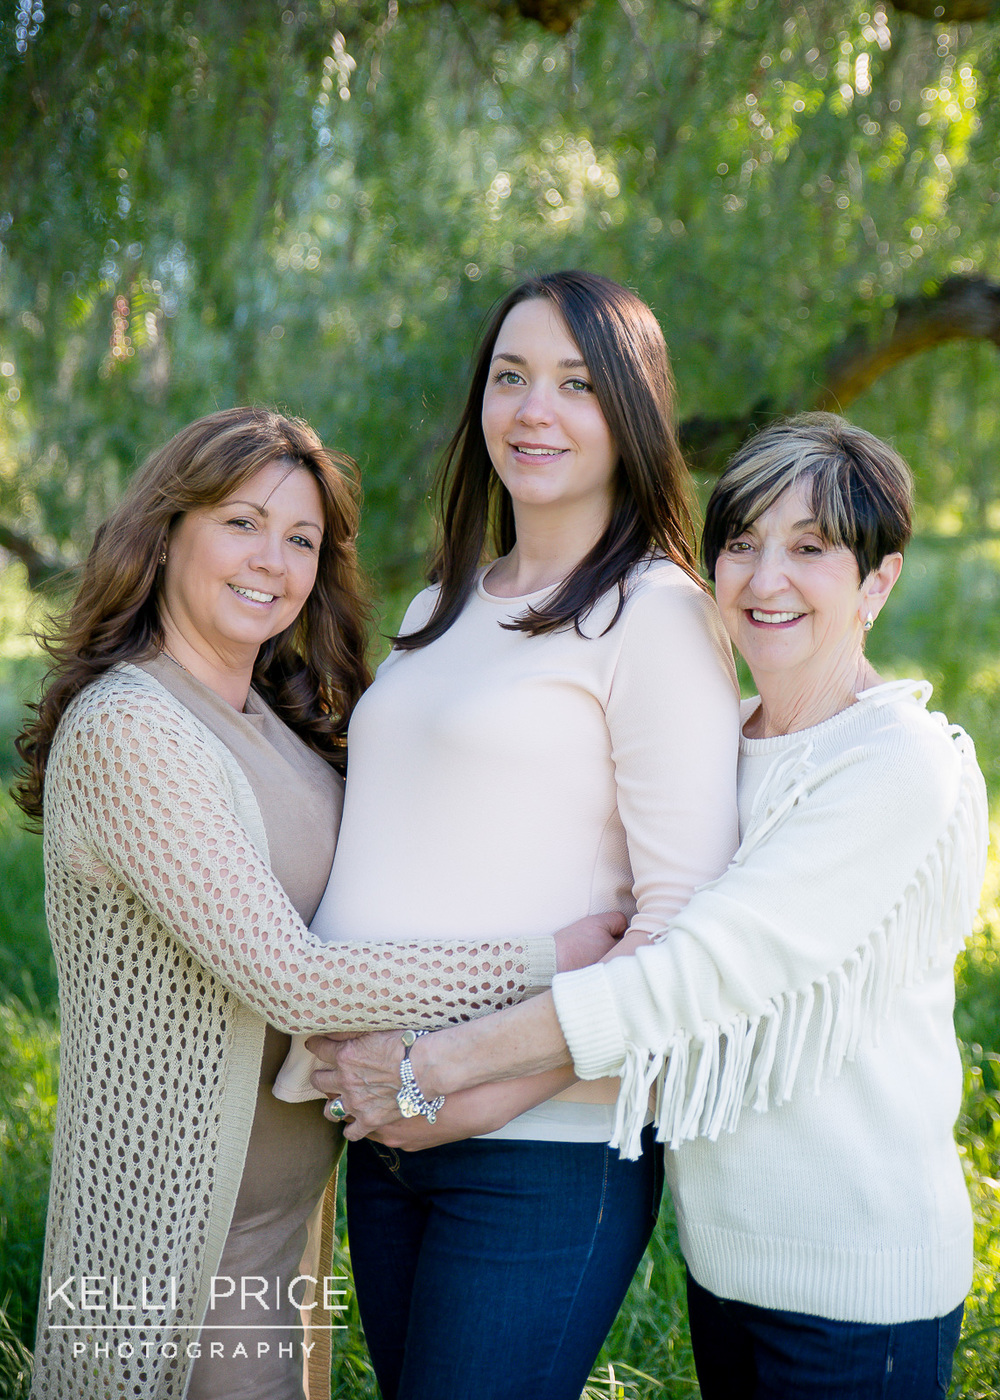 JohnstonMaternity1KelliPricePhotography_WalnutCreekCalifornia.jpg